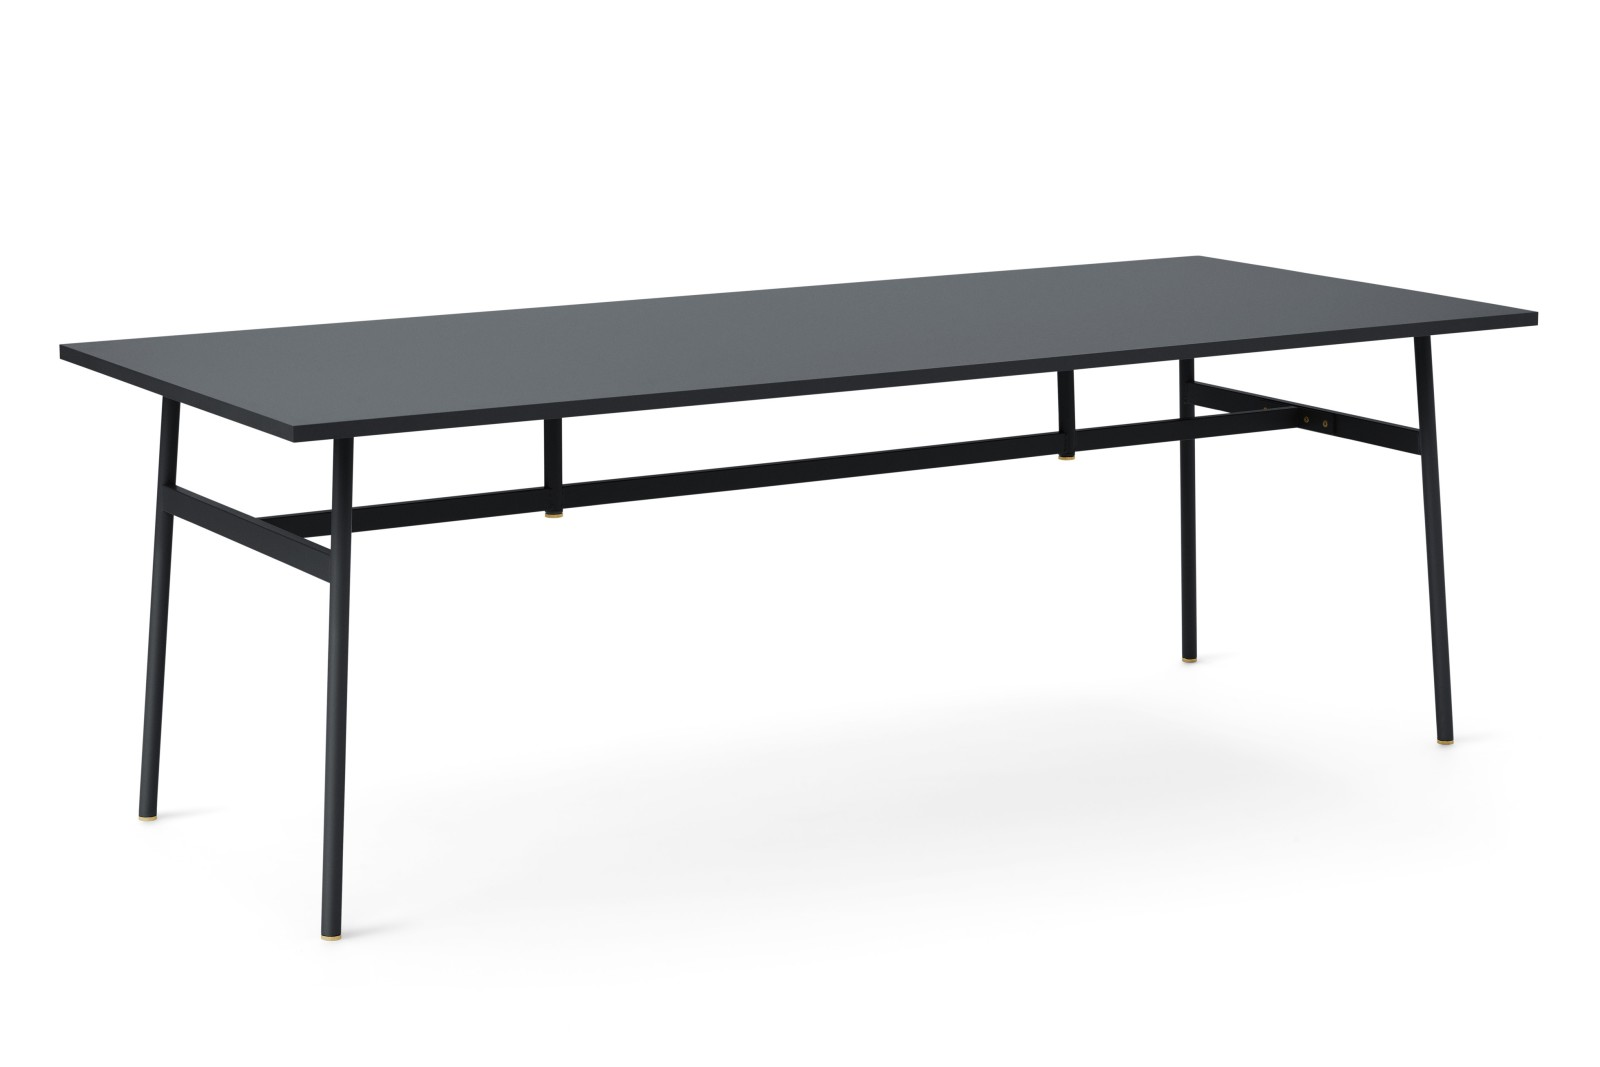 Union Rectangular Dining Table Black, 220